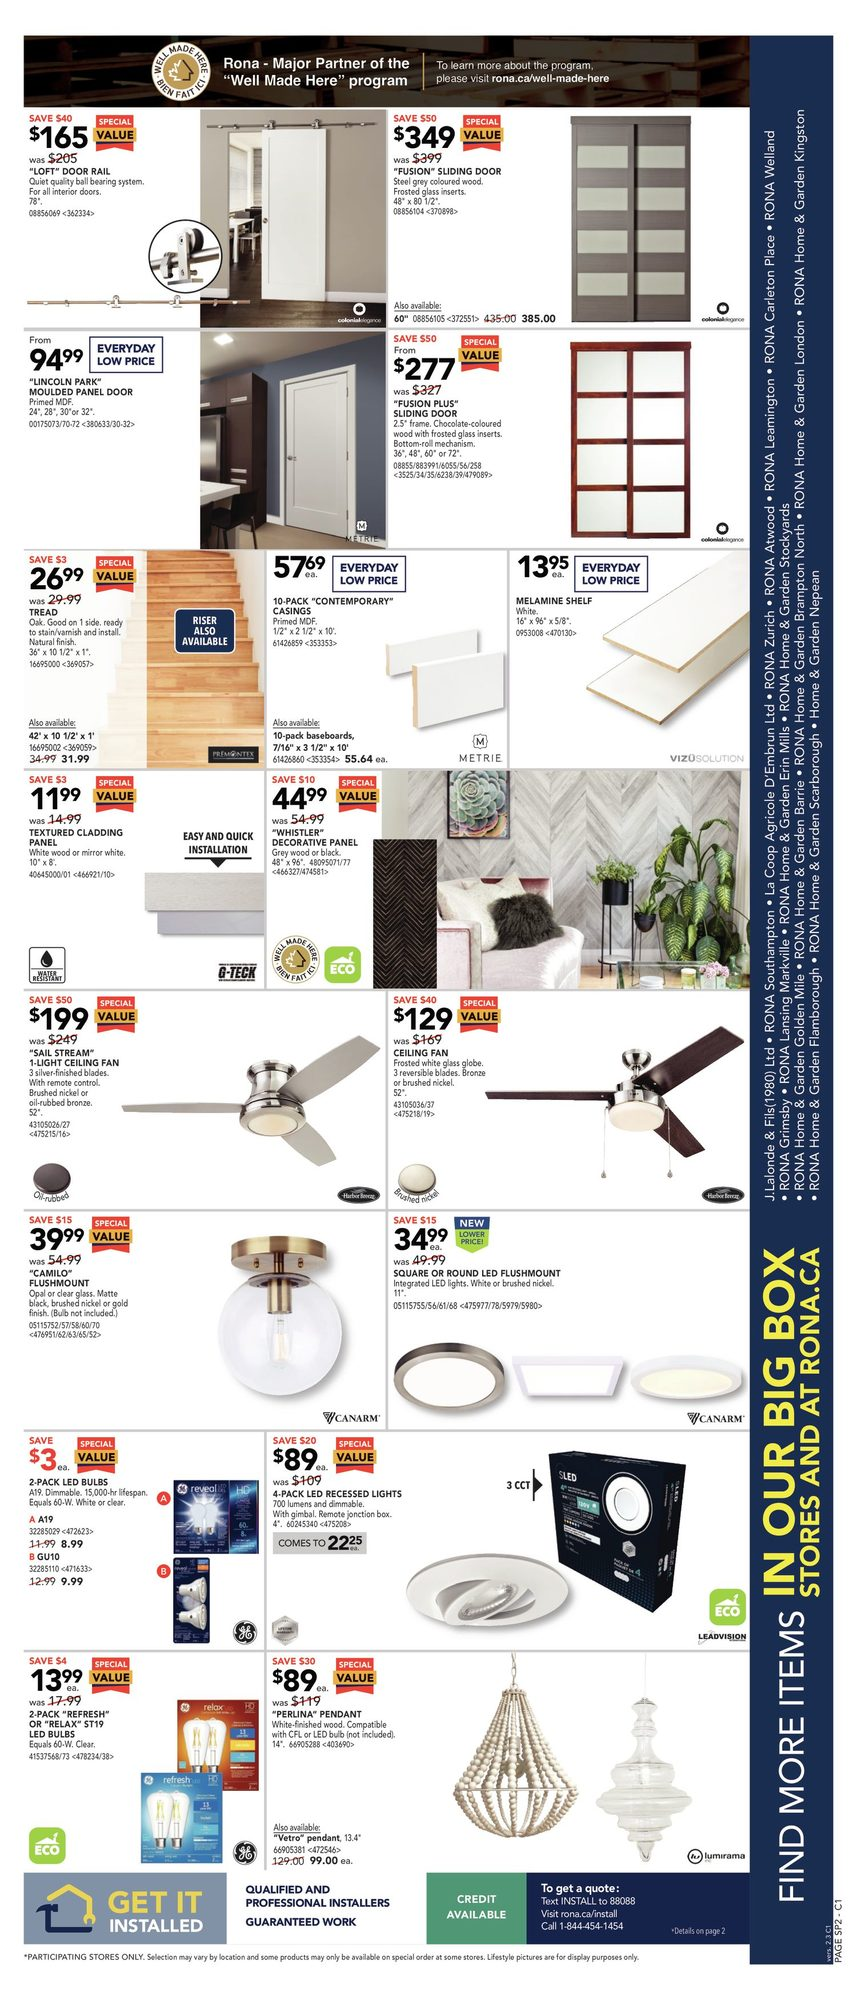 Rona - Weekly Flyer Specials - Father's Day Event - Page 7